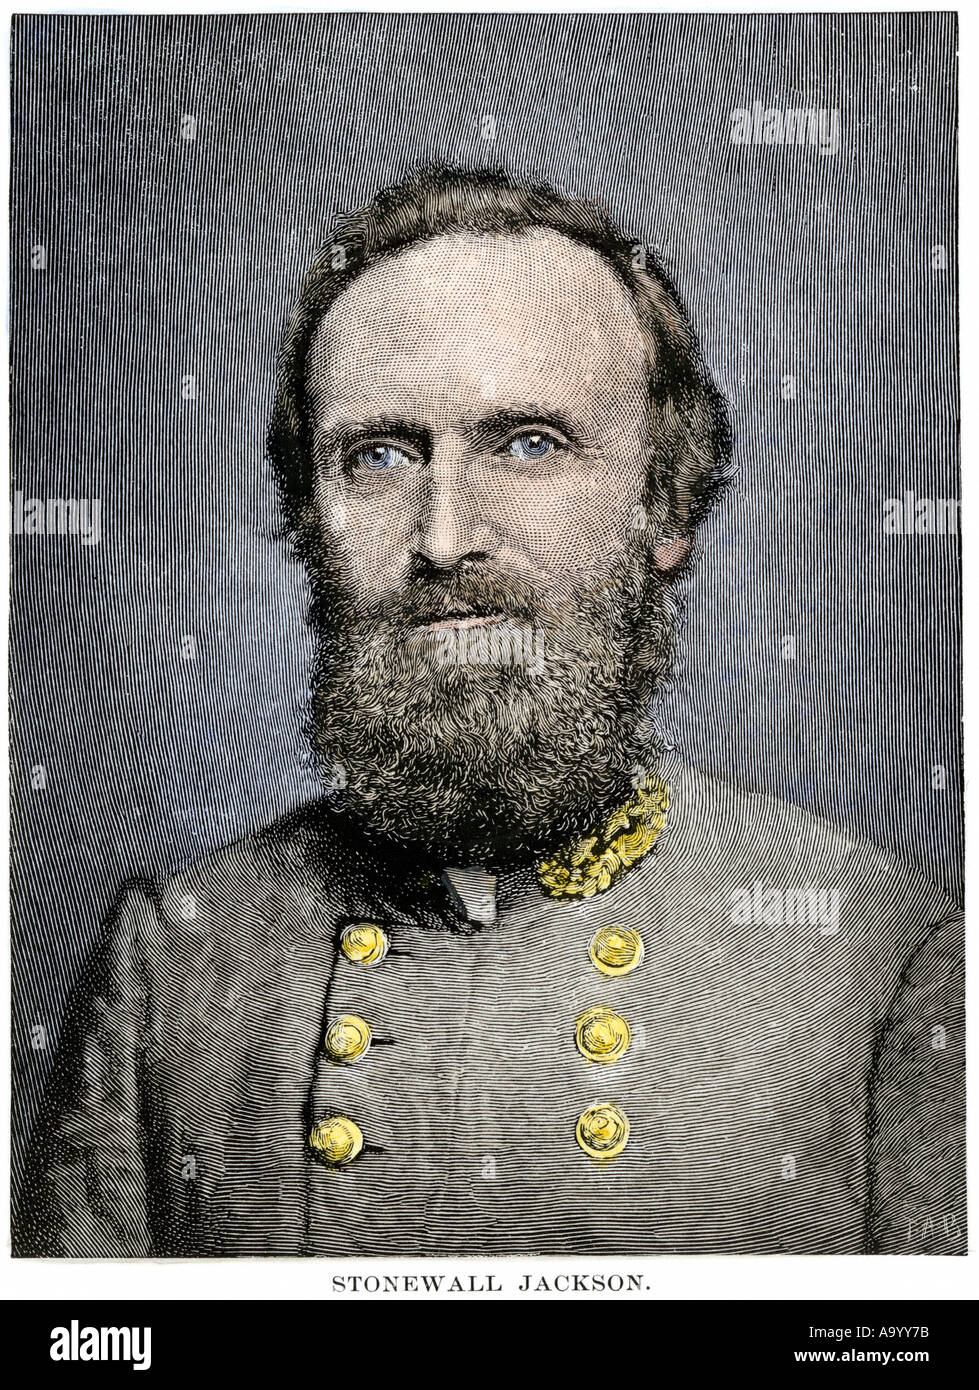 stonewall jackson - photo #23